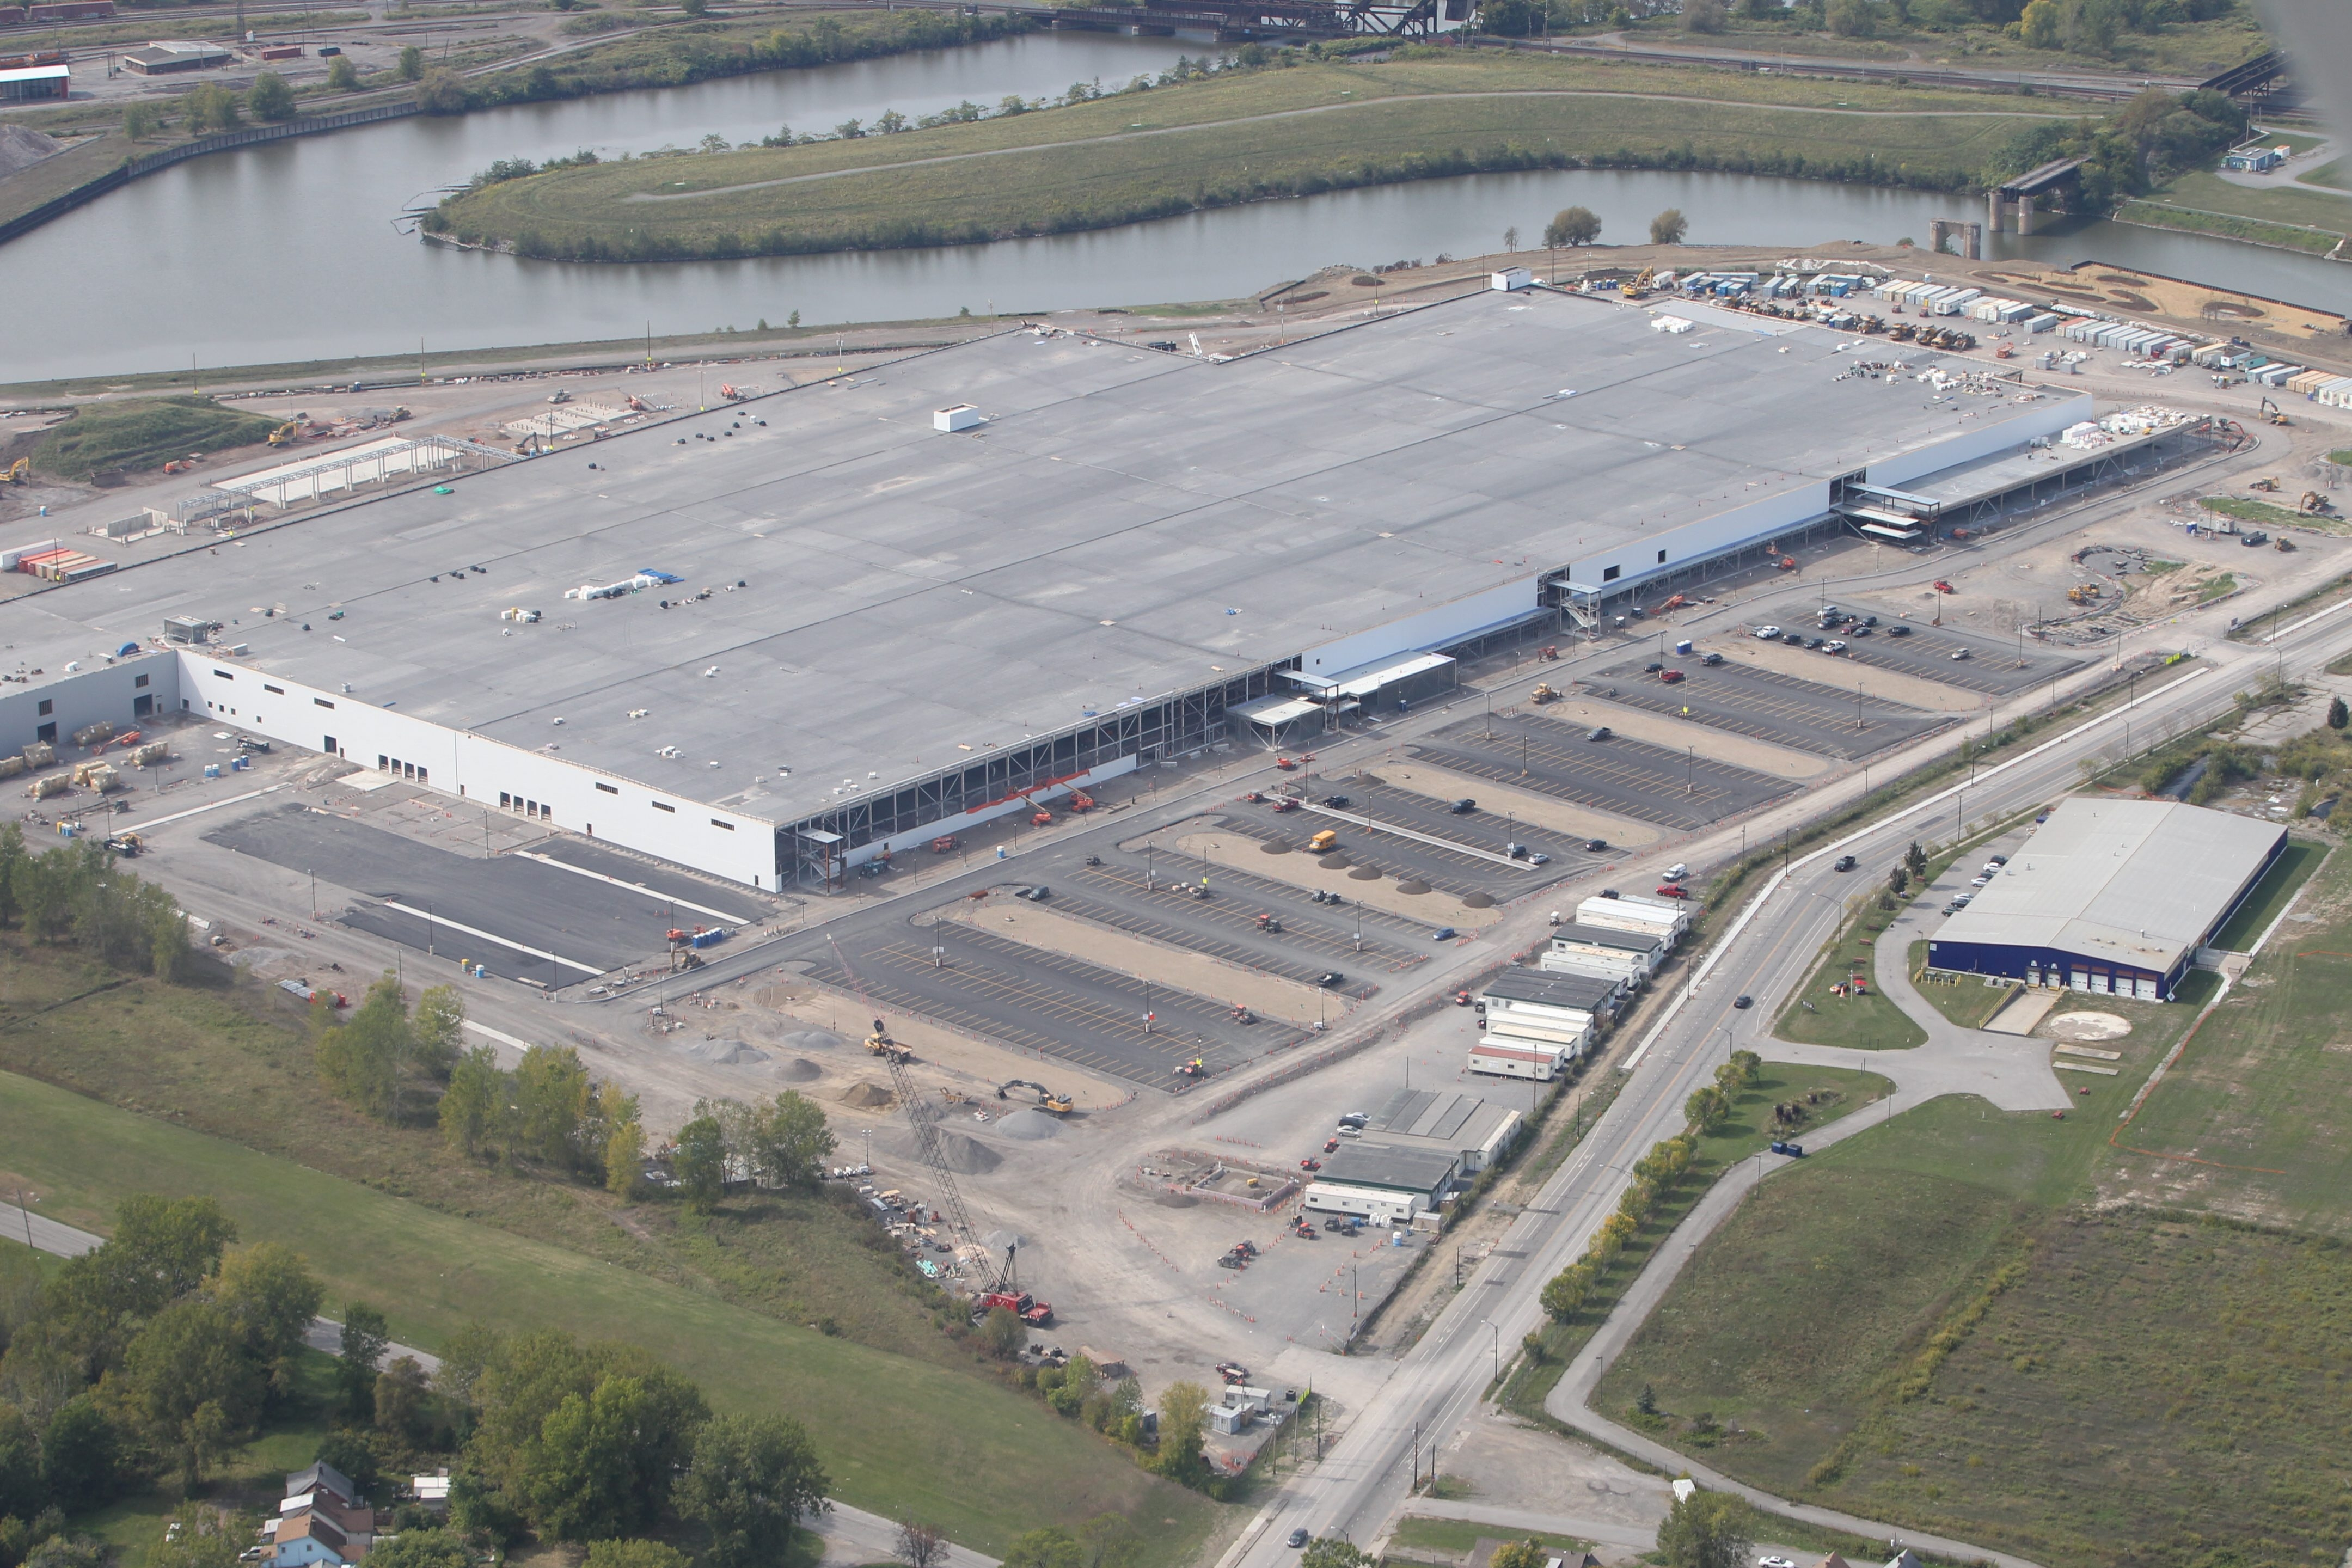 Construction continues on SolarCity factory at RiverBend in South Buffalo, which is scheduled to open next year and reach full production of panels in 2017. SolarCity's stock price has fallen since it went public in 2012, and it's set to get an investment boost.